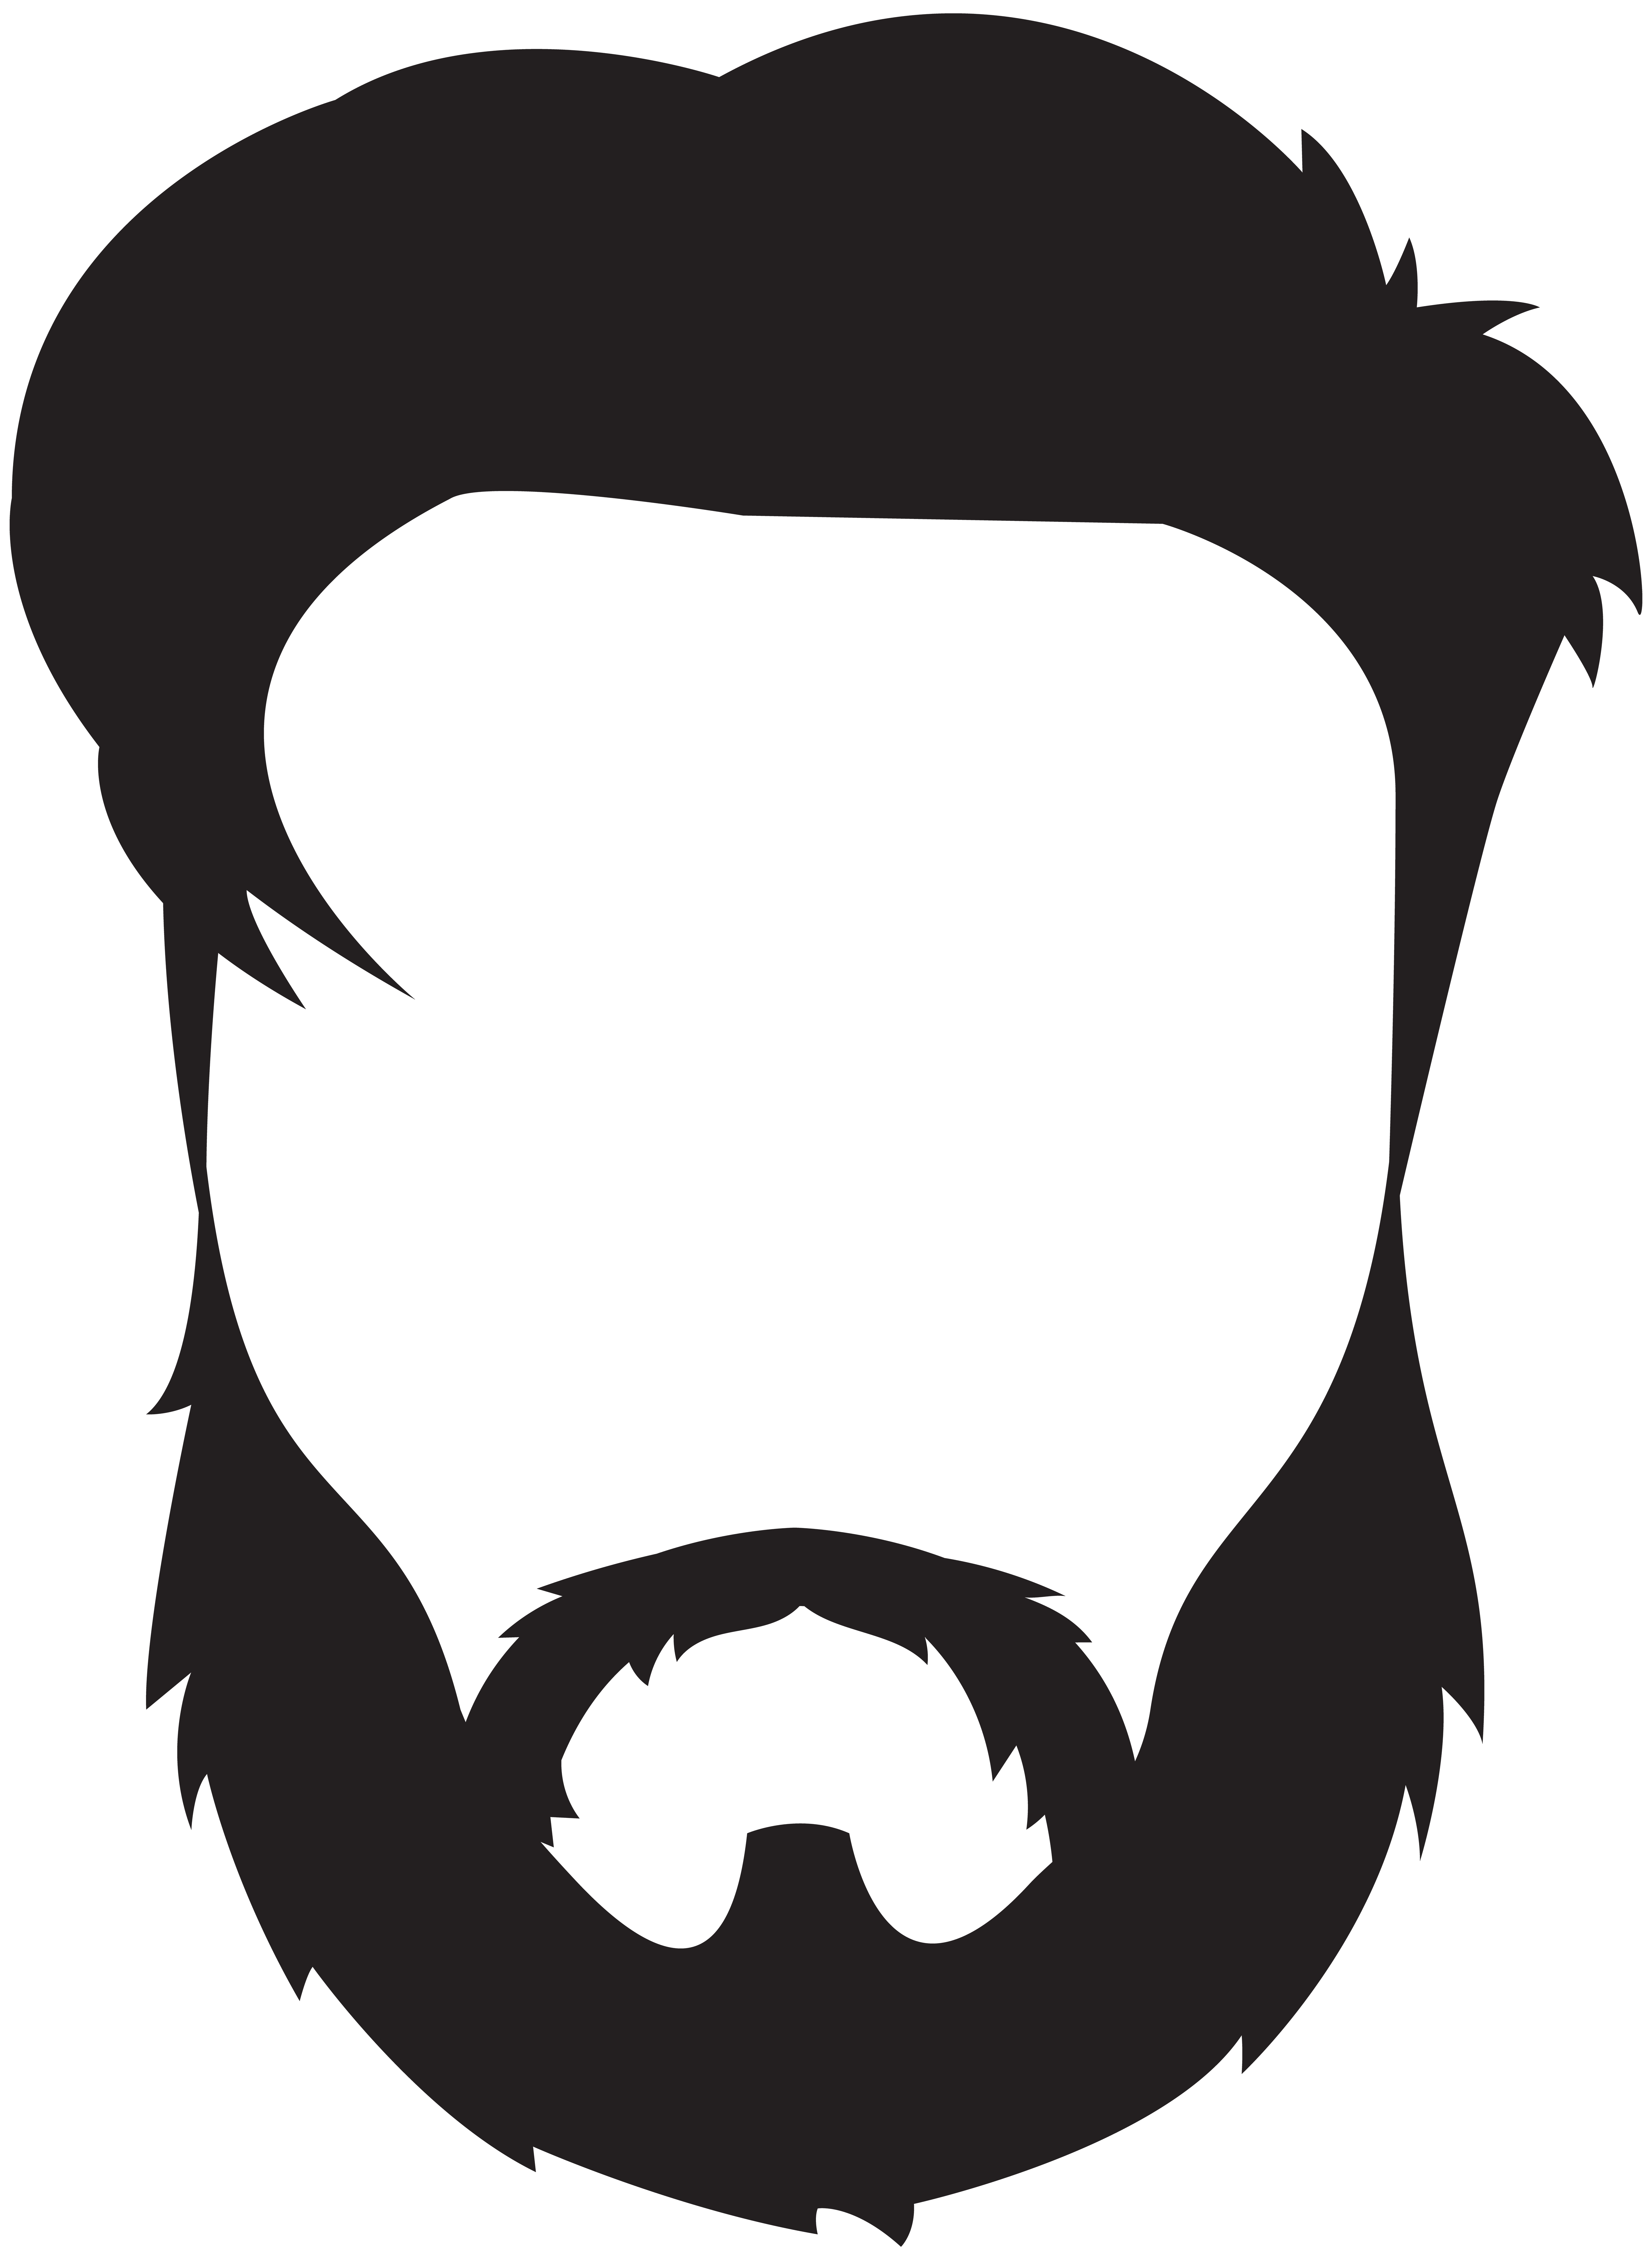 Mustache and goatee png. Beard royalty free clip